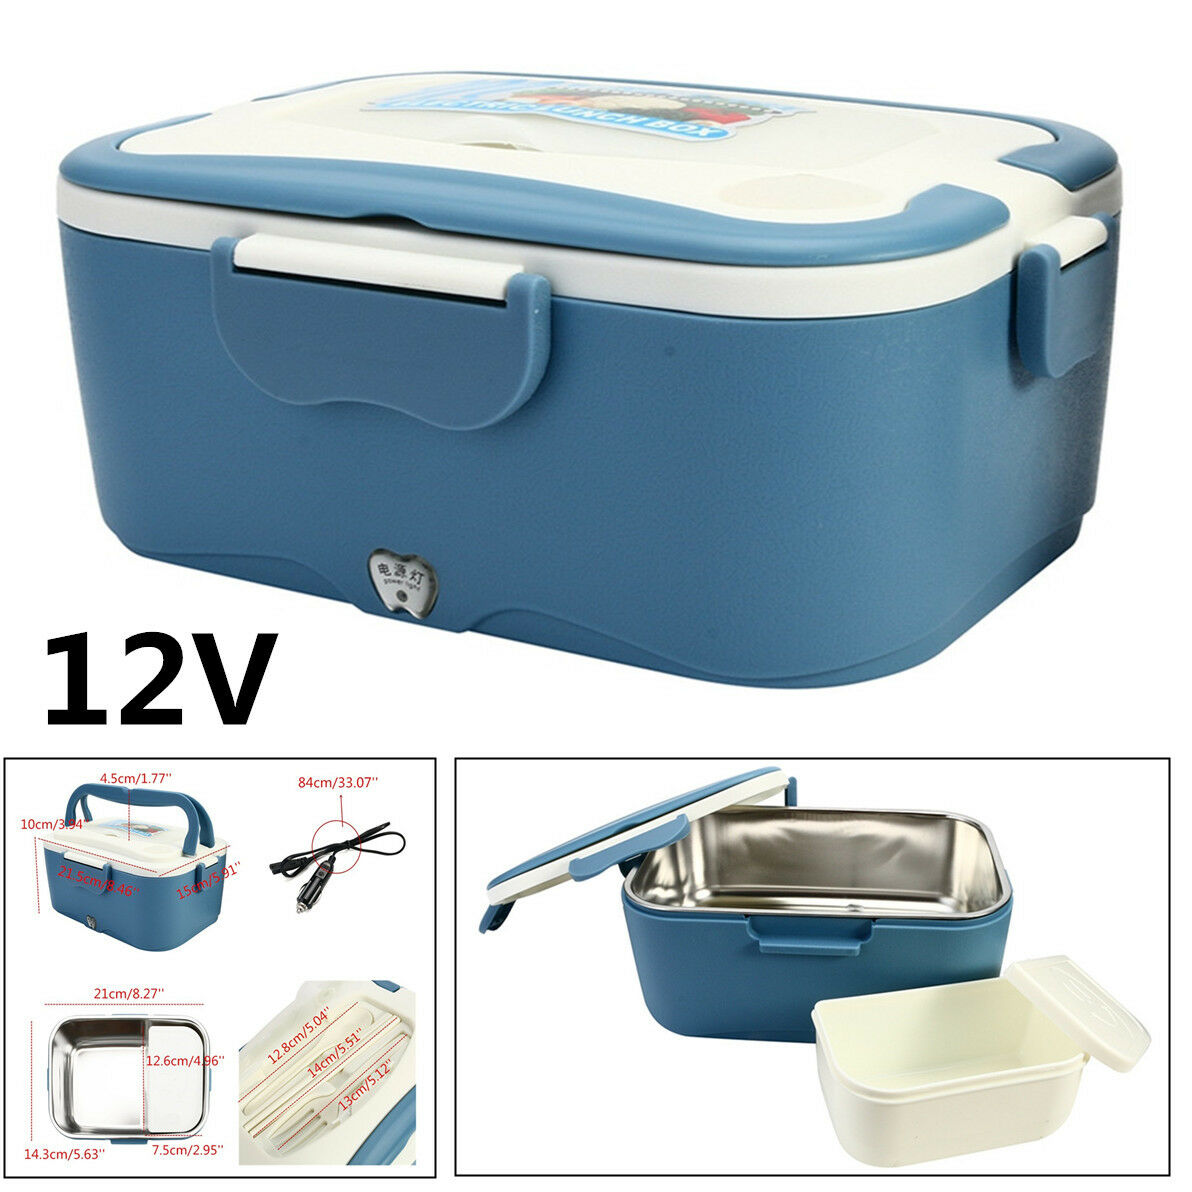 Portable 1.5L bluee Lunch Box 12V Car Electric Food Warmer Hot Rice Cooker Heater